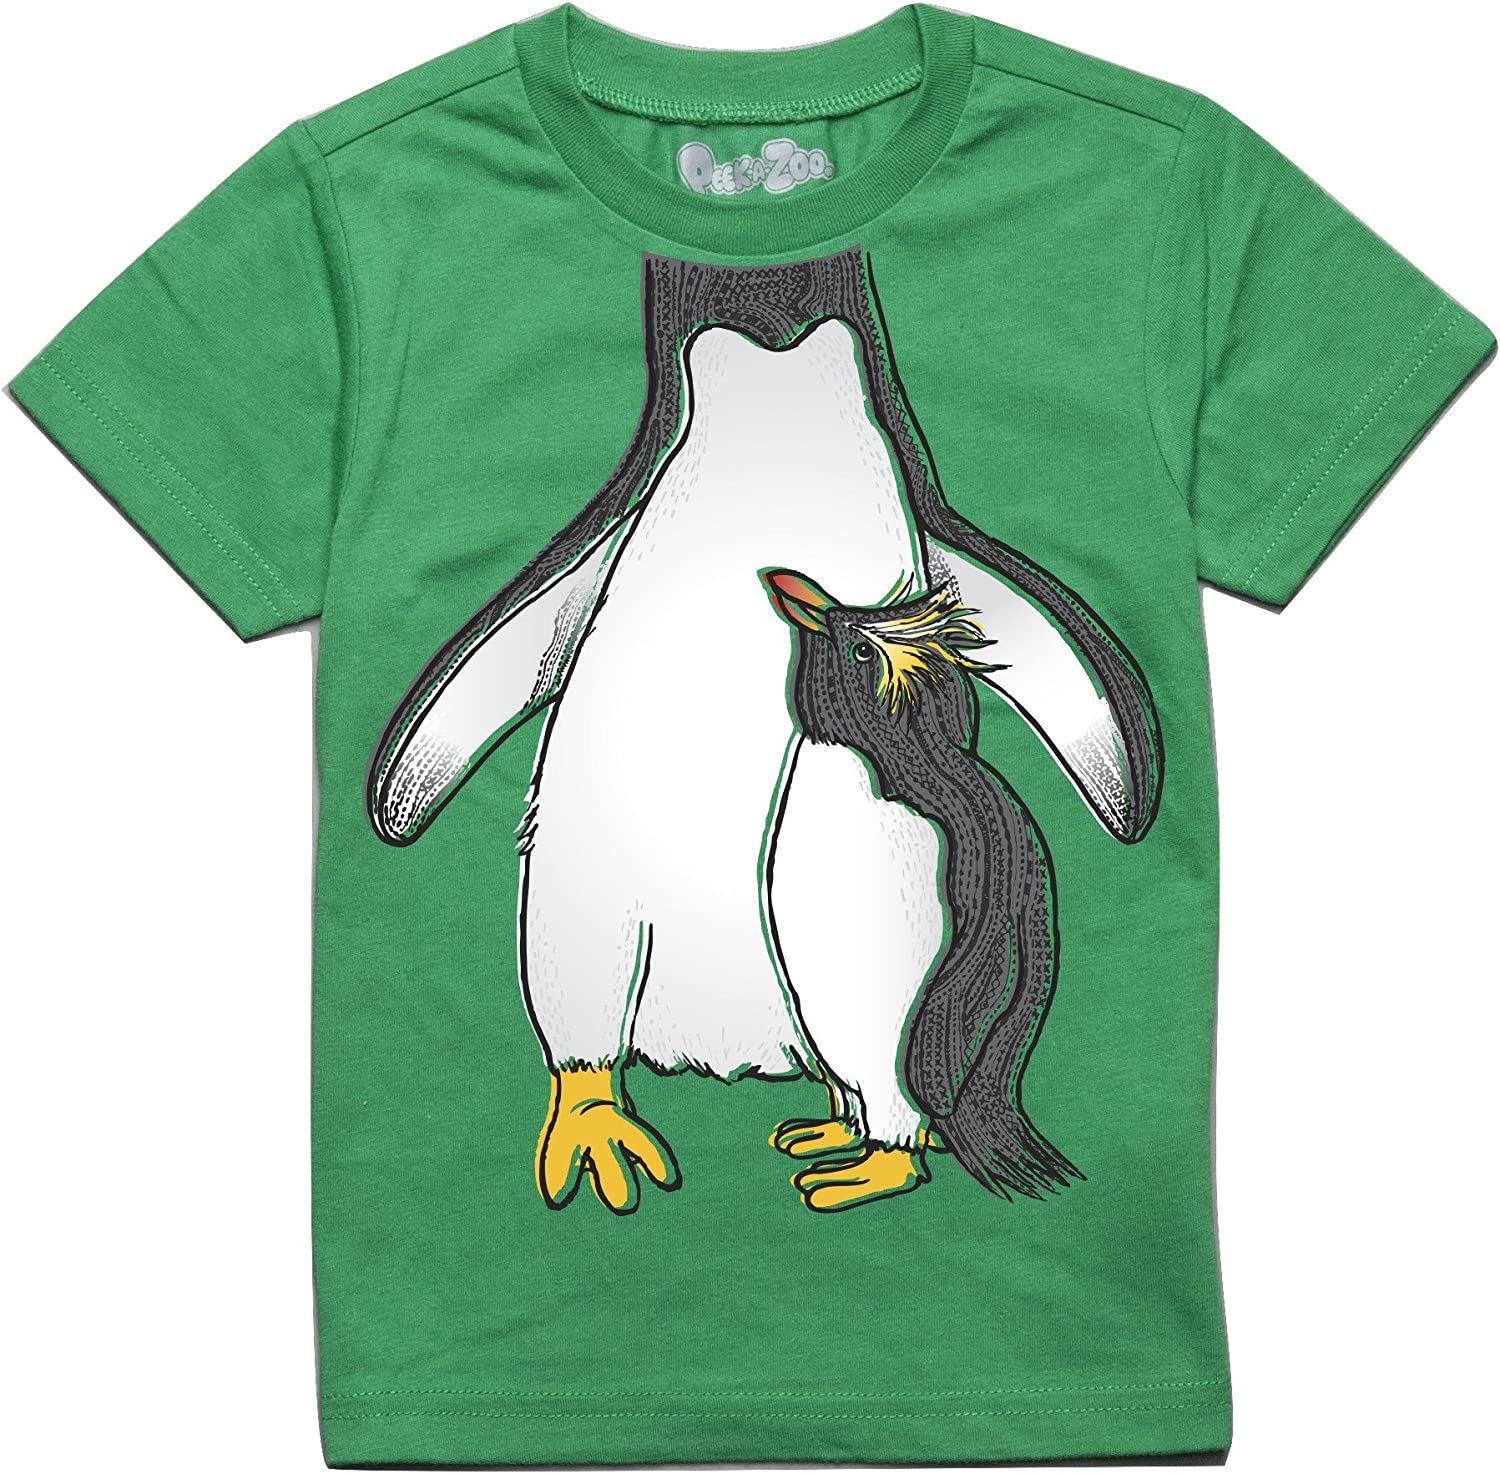 Peek-A-Zoo Become a Water Animal or Character Super Soft Short Sleeve Tee for Baby, Infant + Toddler (0/6M-6T)